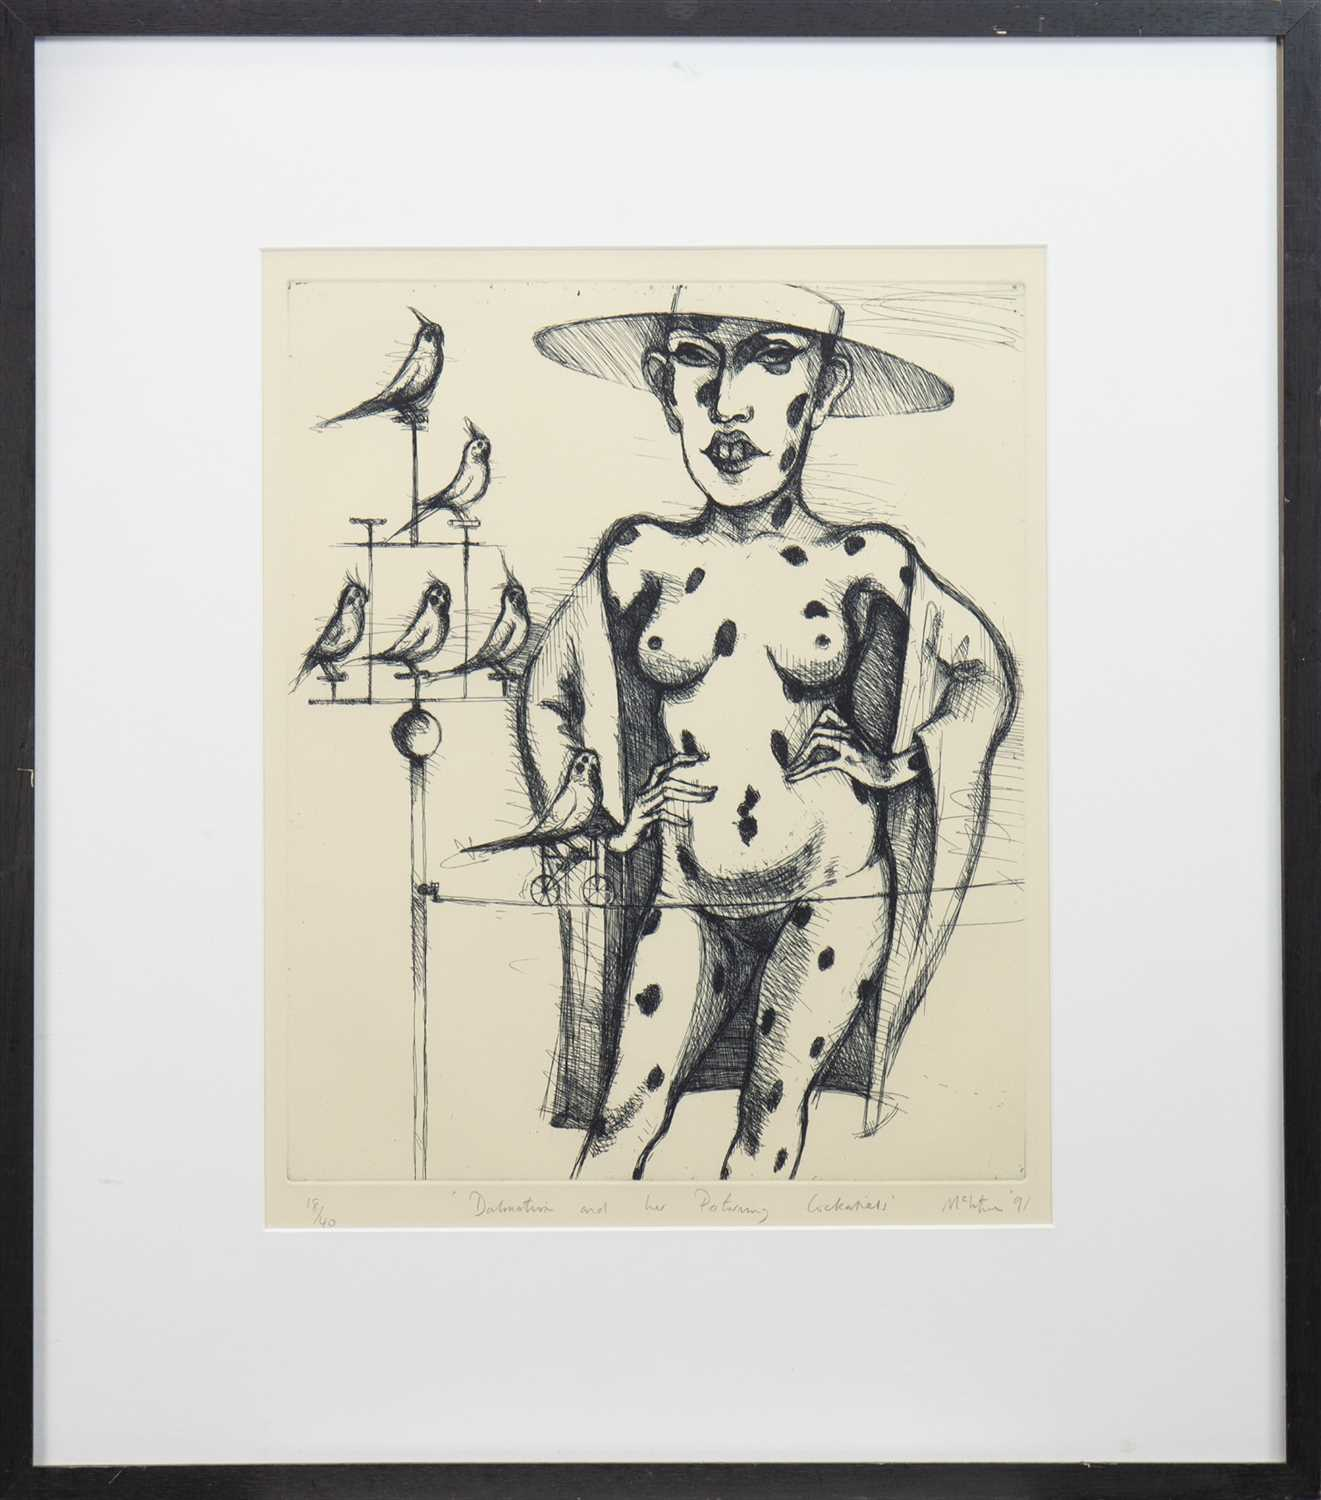 Lot 505-DALMATIAN AND HER PERFORMING COCKTEILS, AN ETCHING BY KEITH MCINTYRE